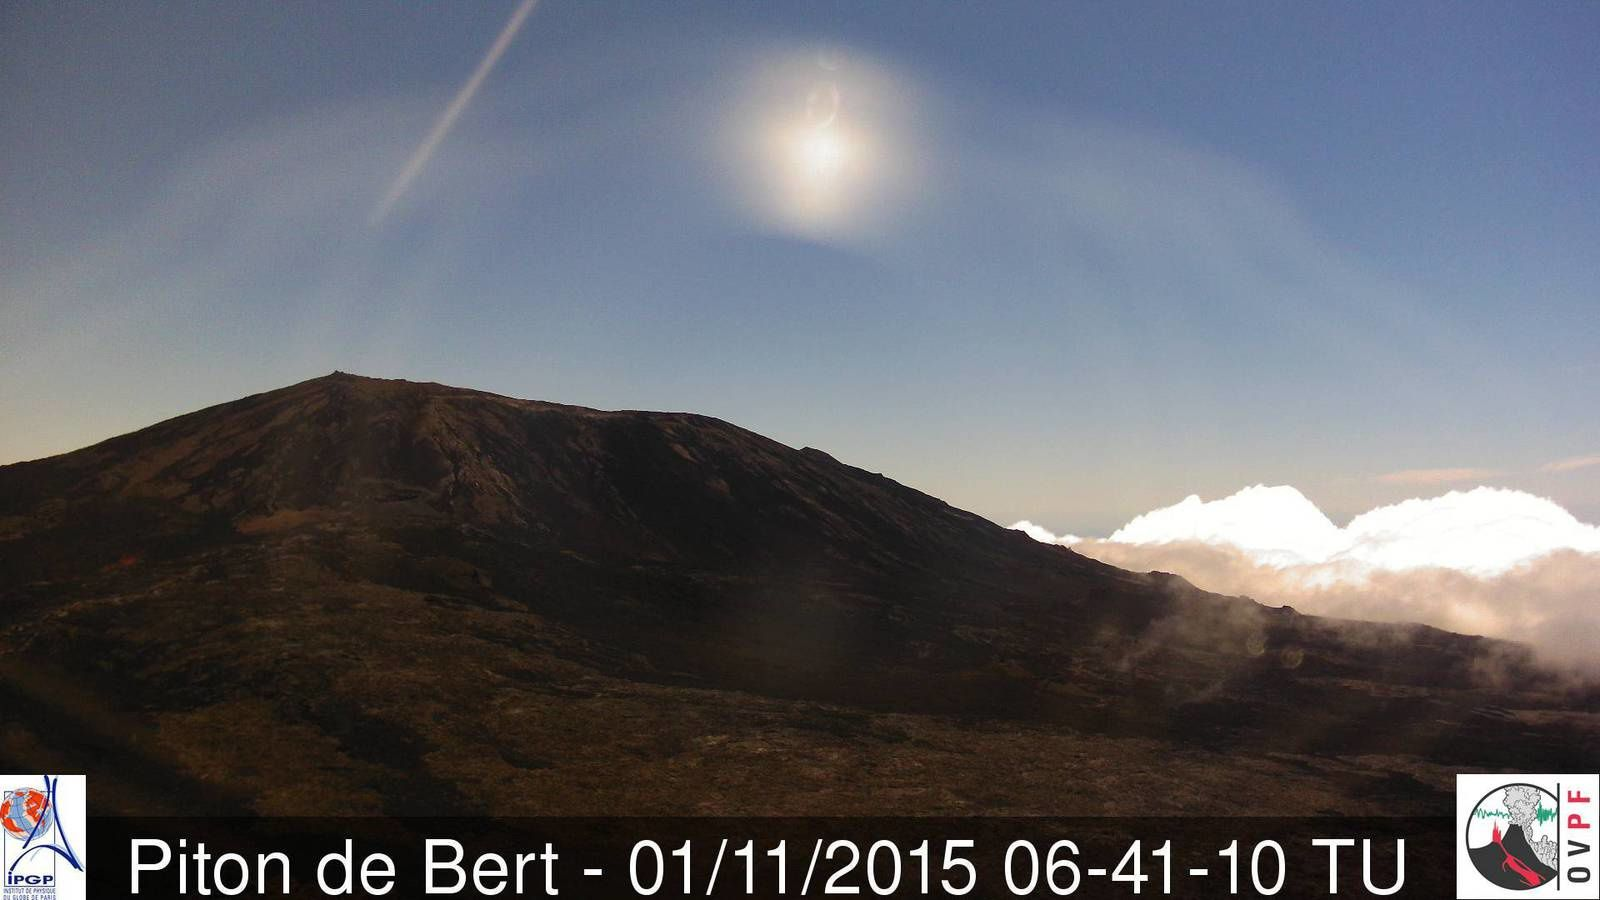 Piton Kalla and Pele / La Fournaise: no more visible activity this morning. - Webcam Piton Bert